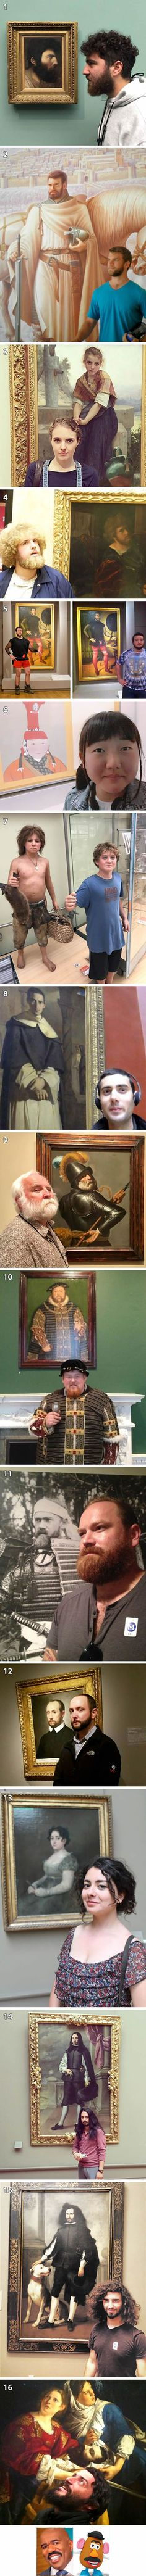 16 People Who Find Their Ancient Statue Twin In Museum